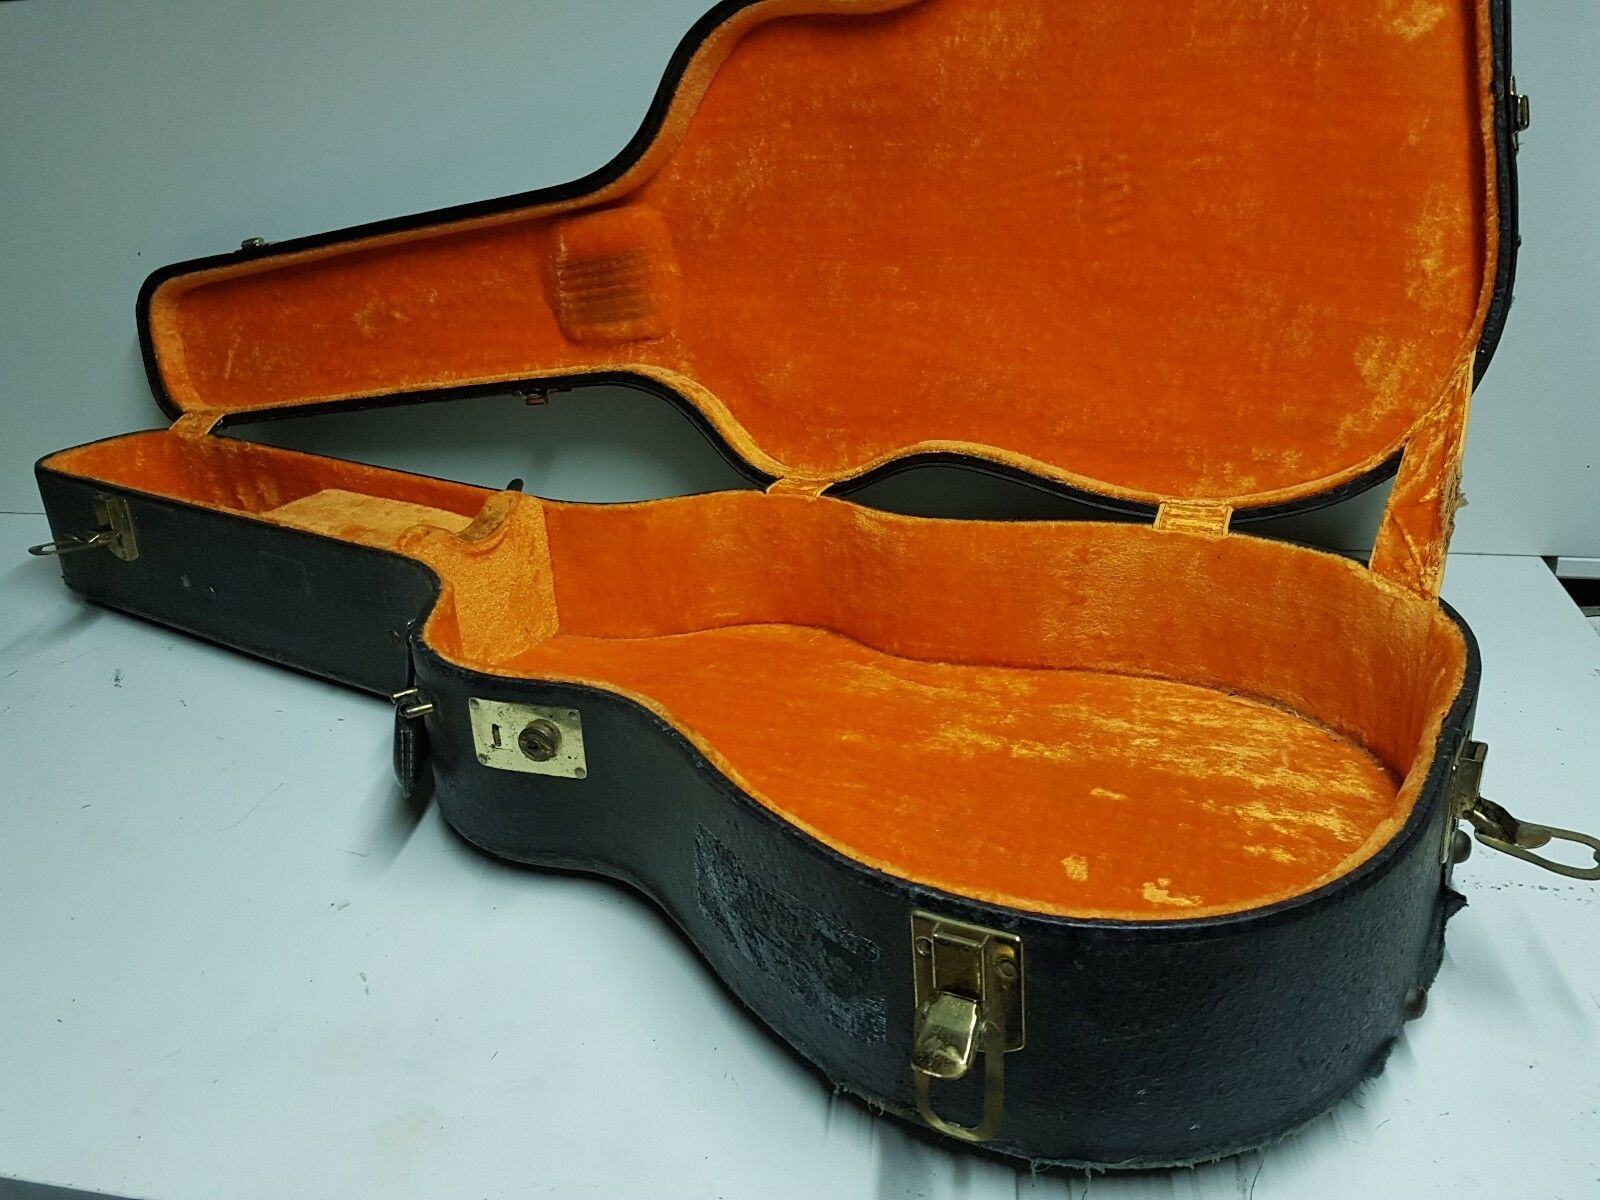 1962 GIBSON HUMMINGBIRD CASE - made in USA - fits ES 175